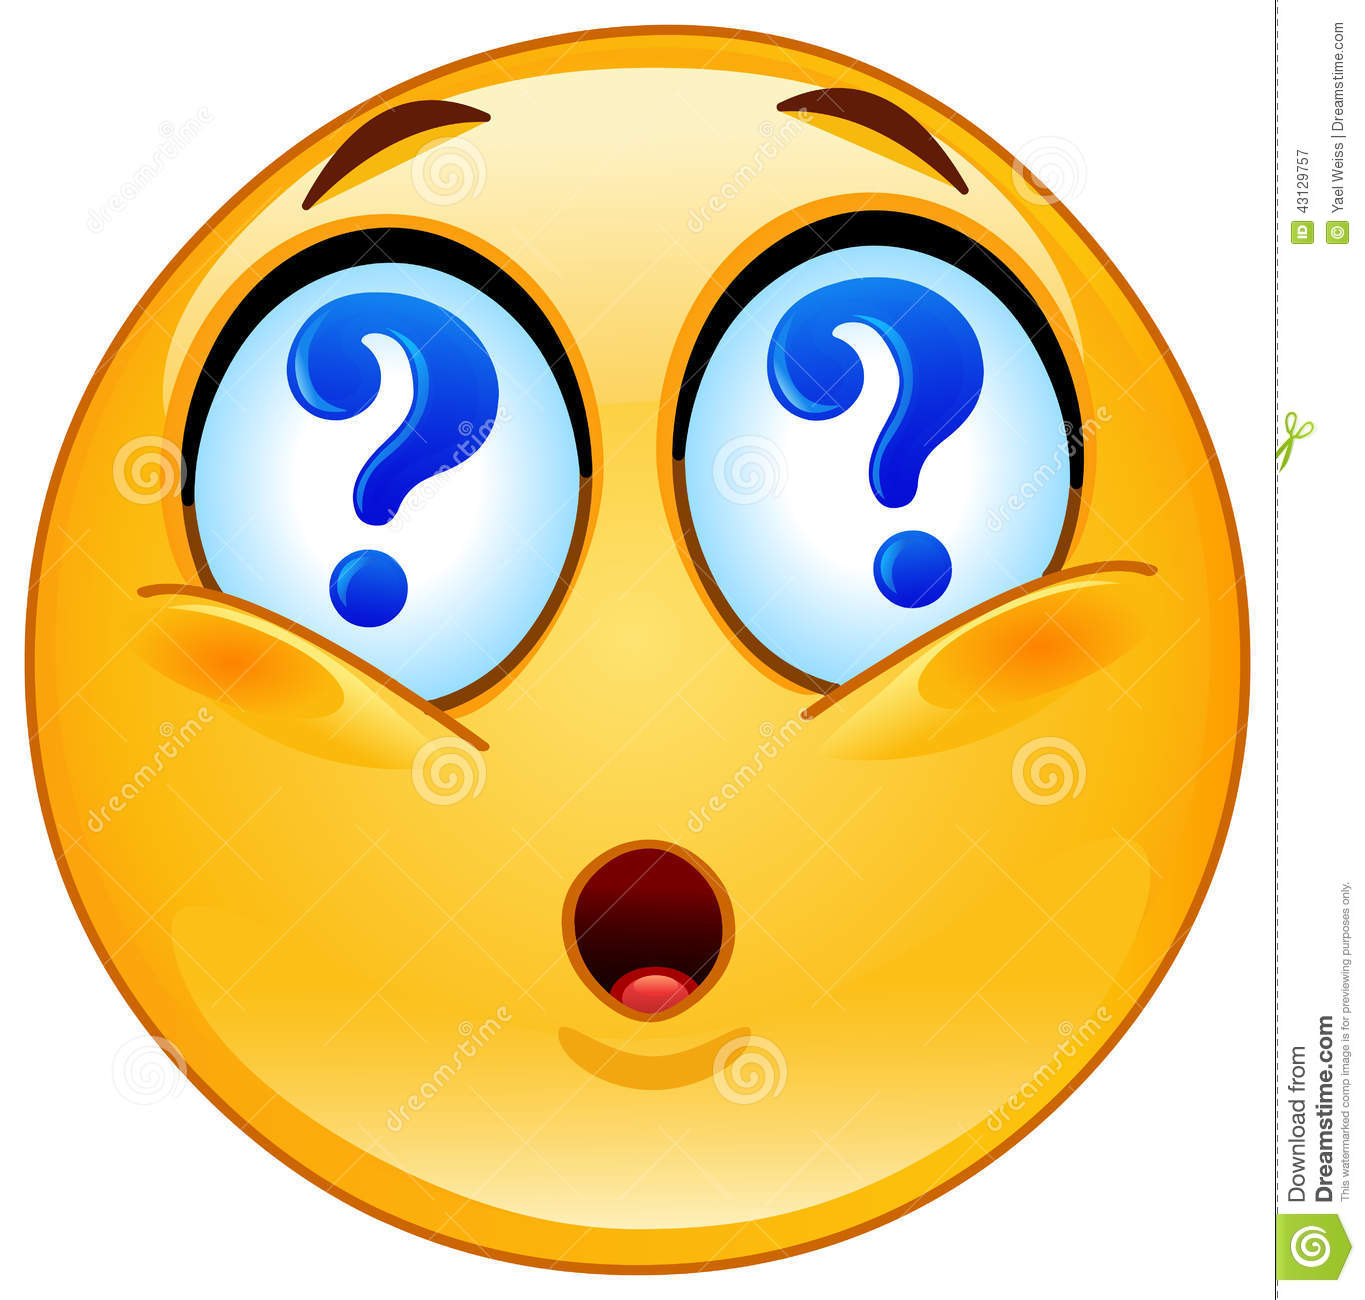 Question Emoticon Stock Vector - Image: 43129757